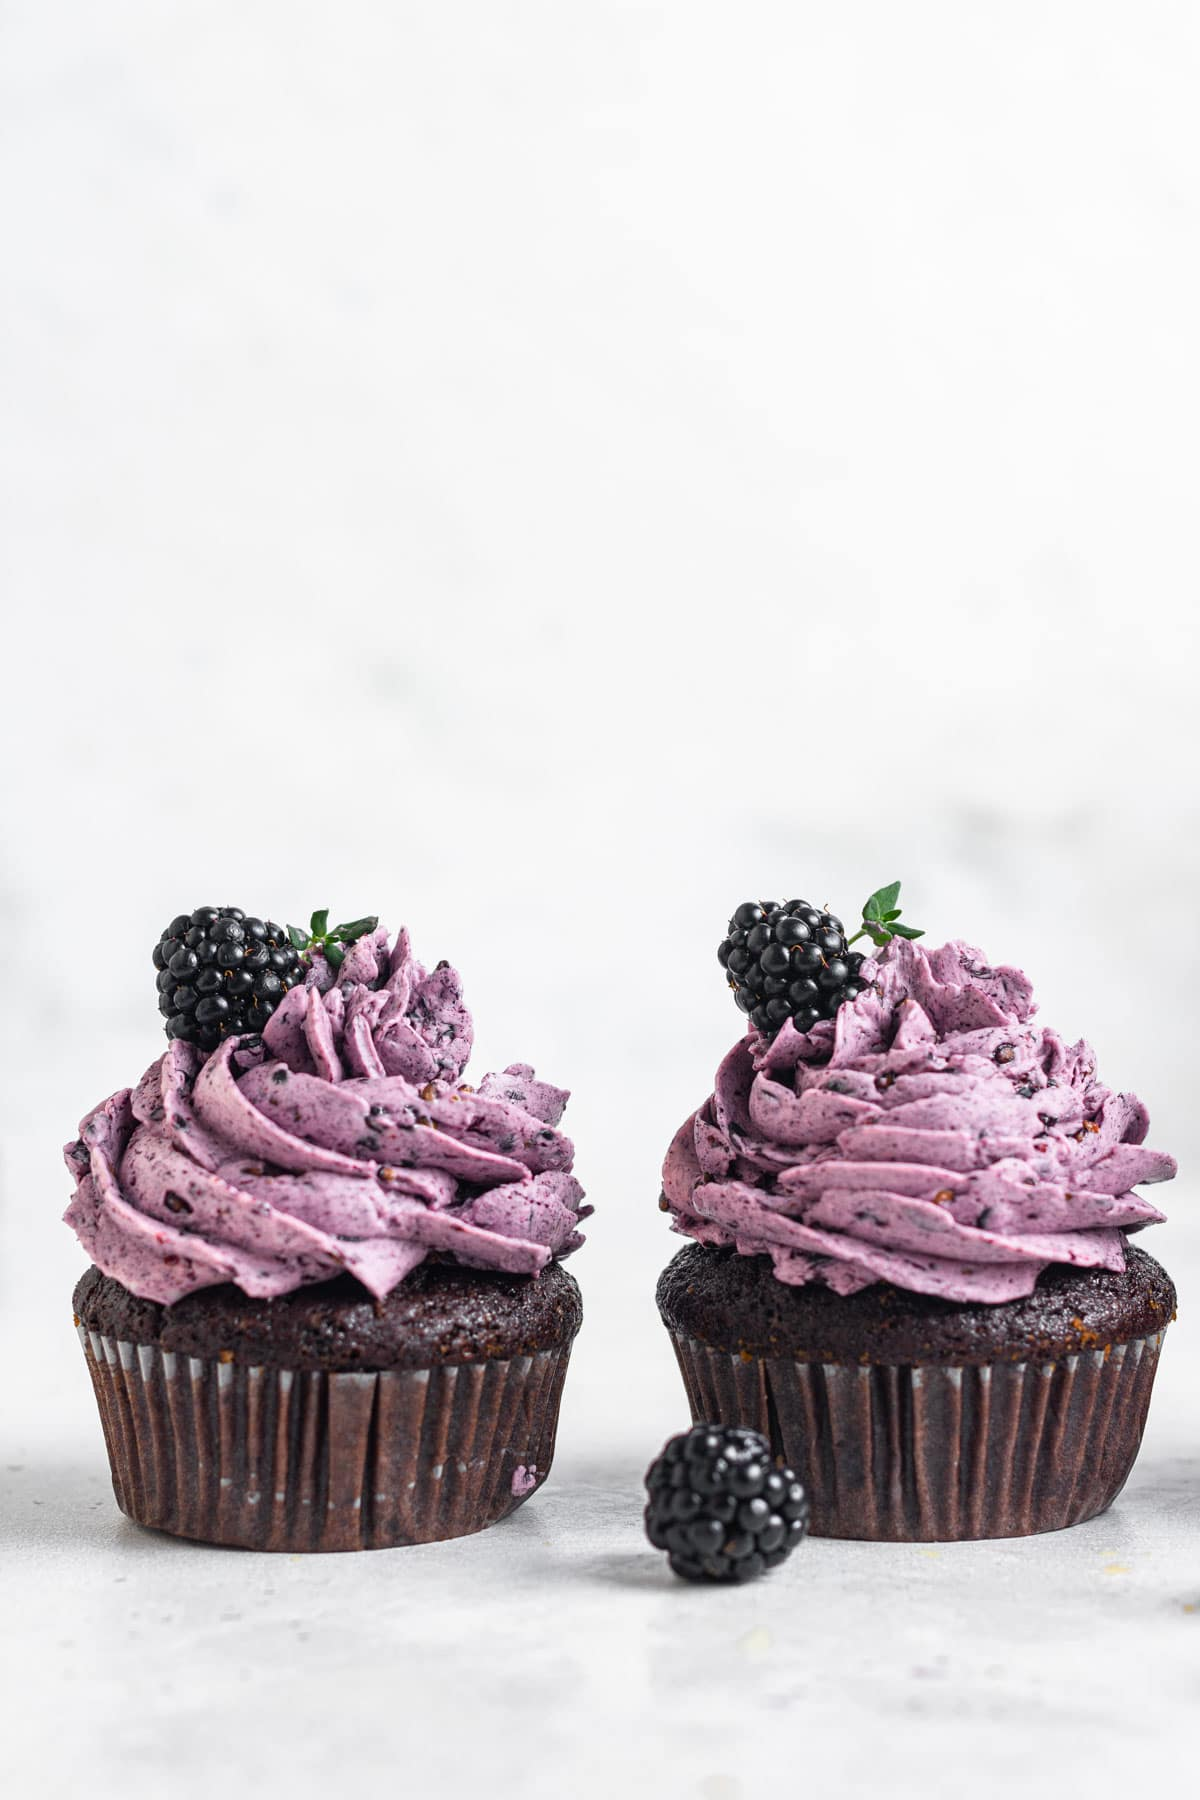 Two chocolate cupcakes with purple frosting and fresh blackberries.